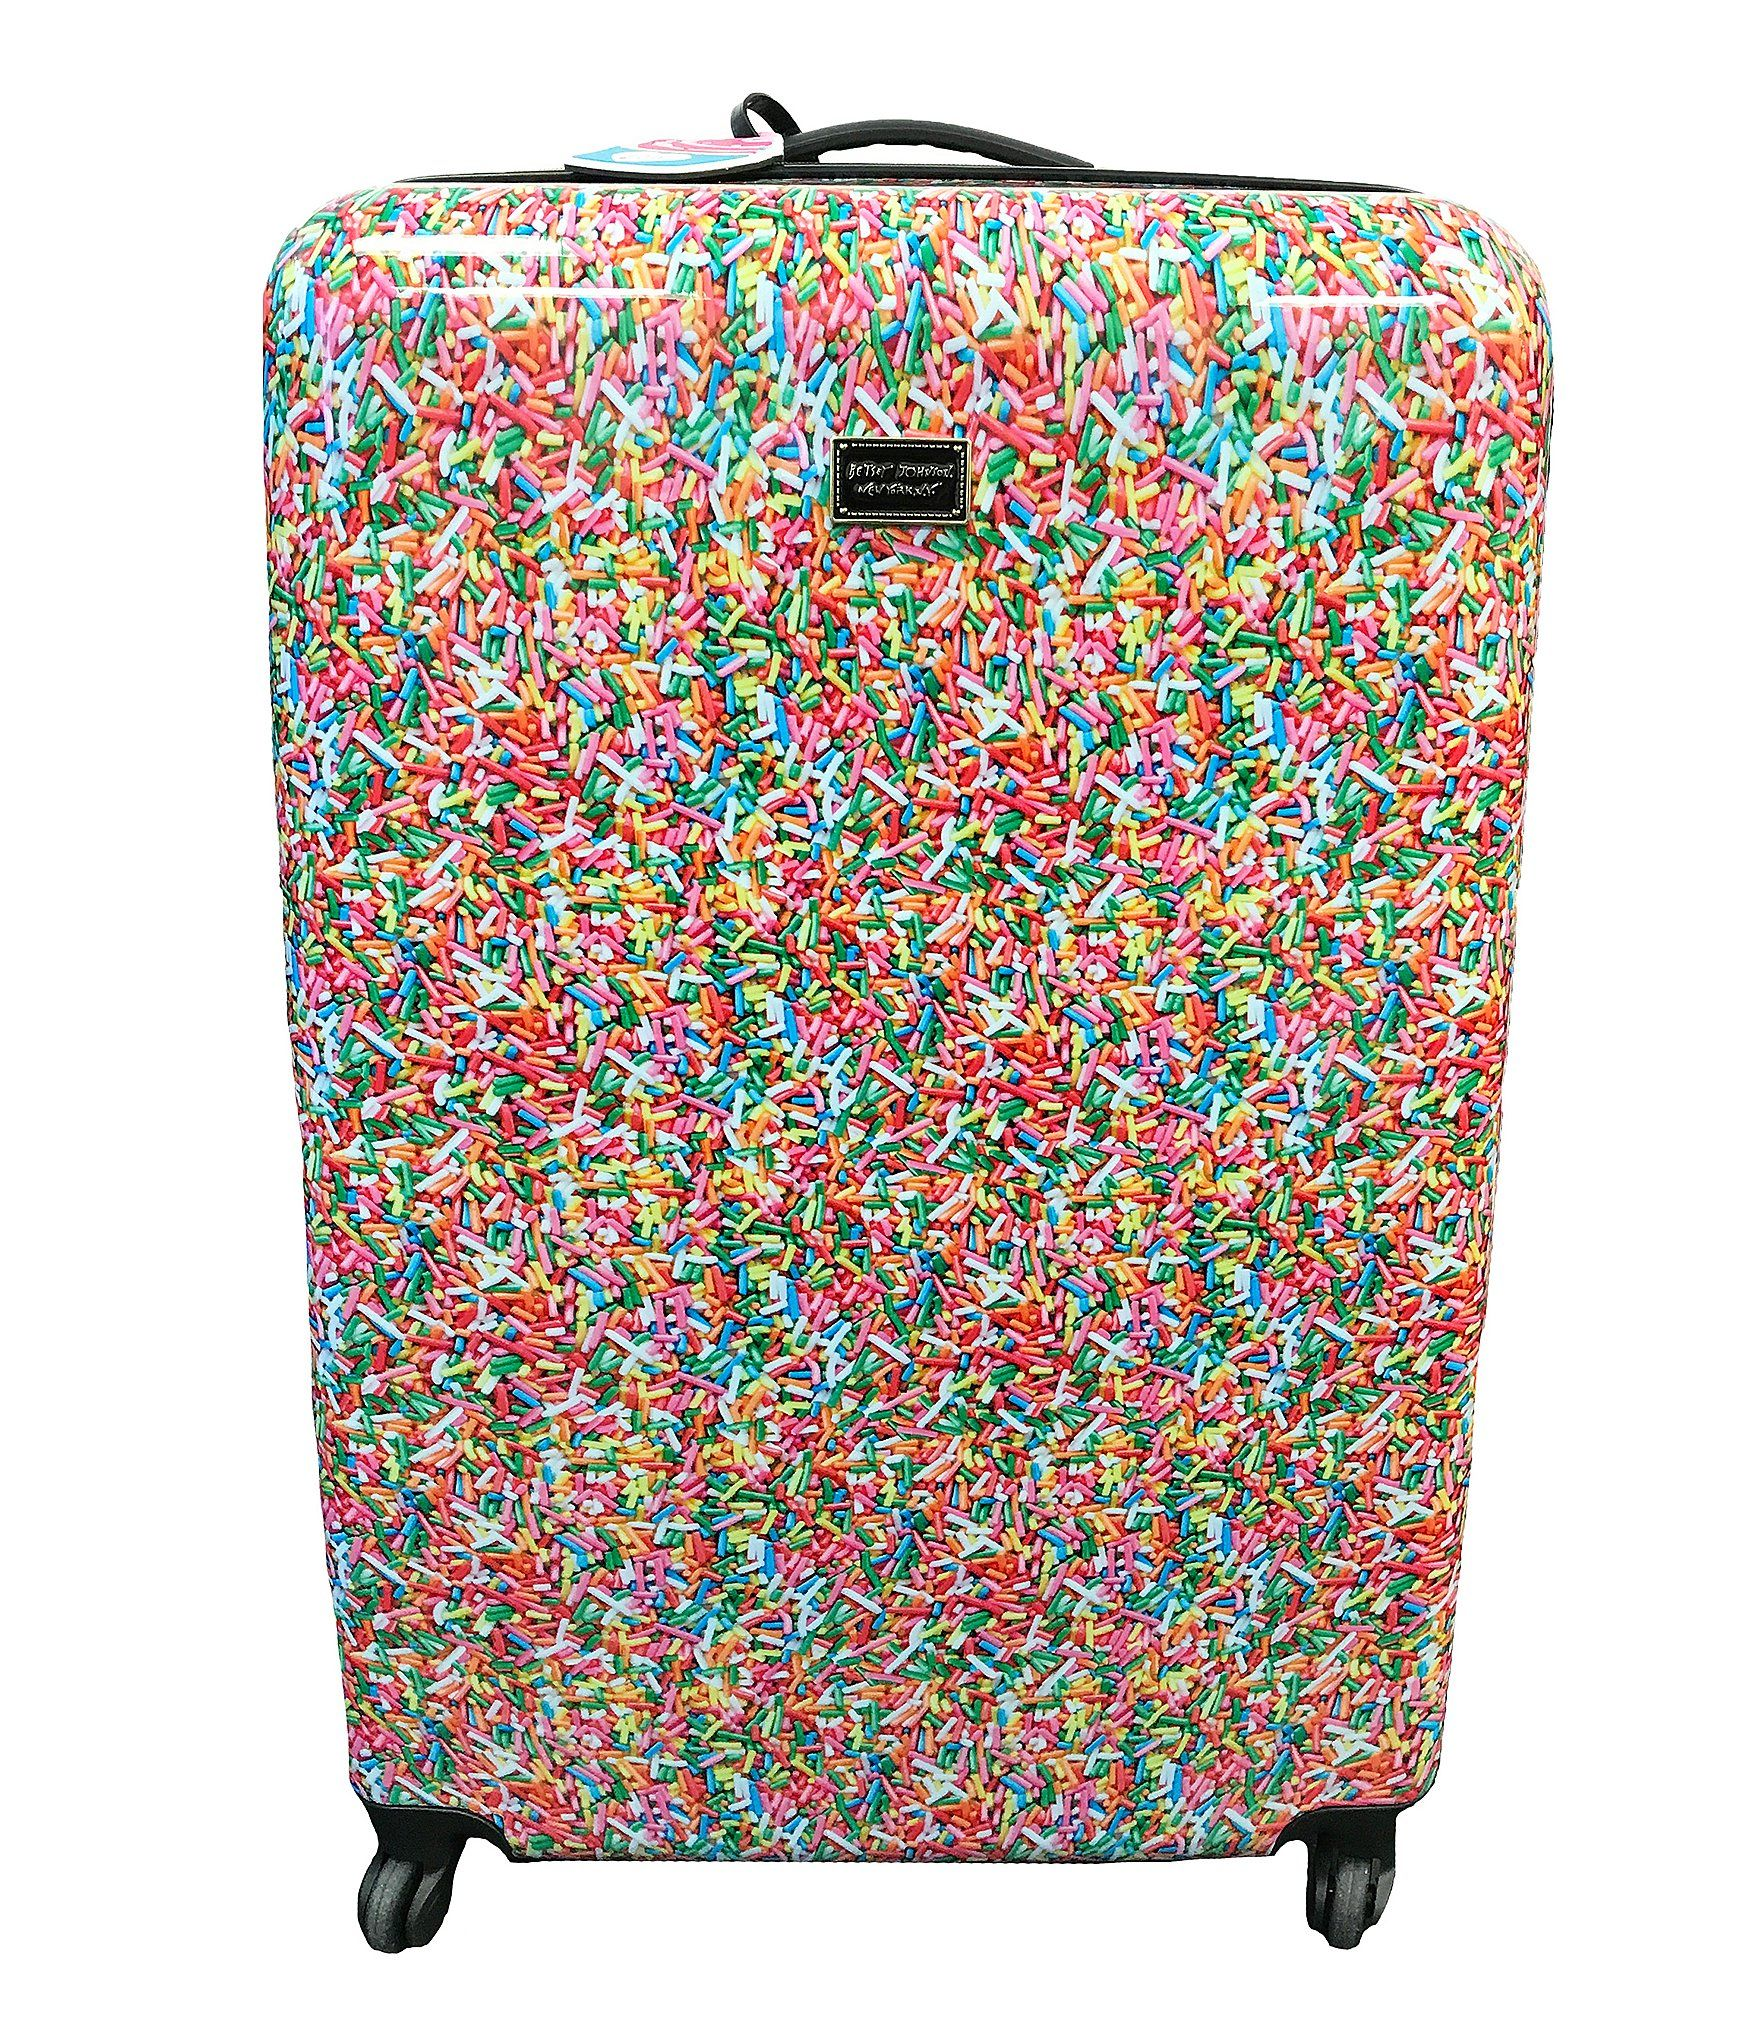 d359fa181 Shop for Betsey Johnson Sprinkle-Print Hardside Luggage at Dillards.com.  Visit Dillards.com to find clothing, accessories, shoes, cosmetics & more.